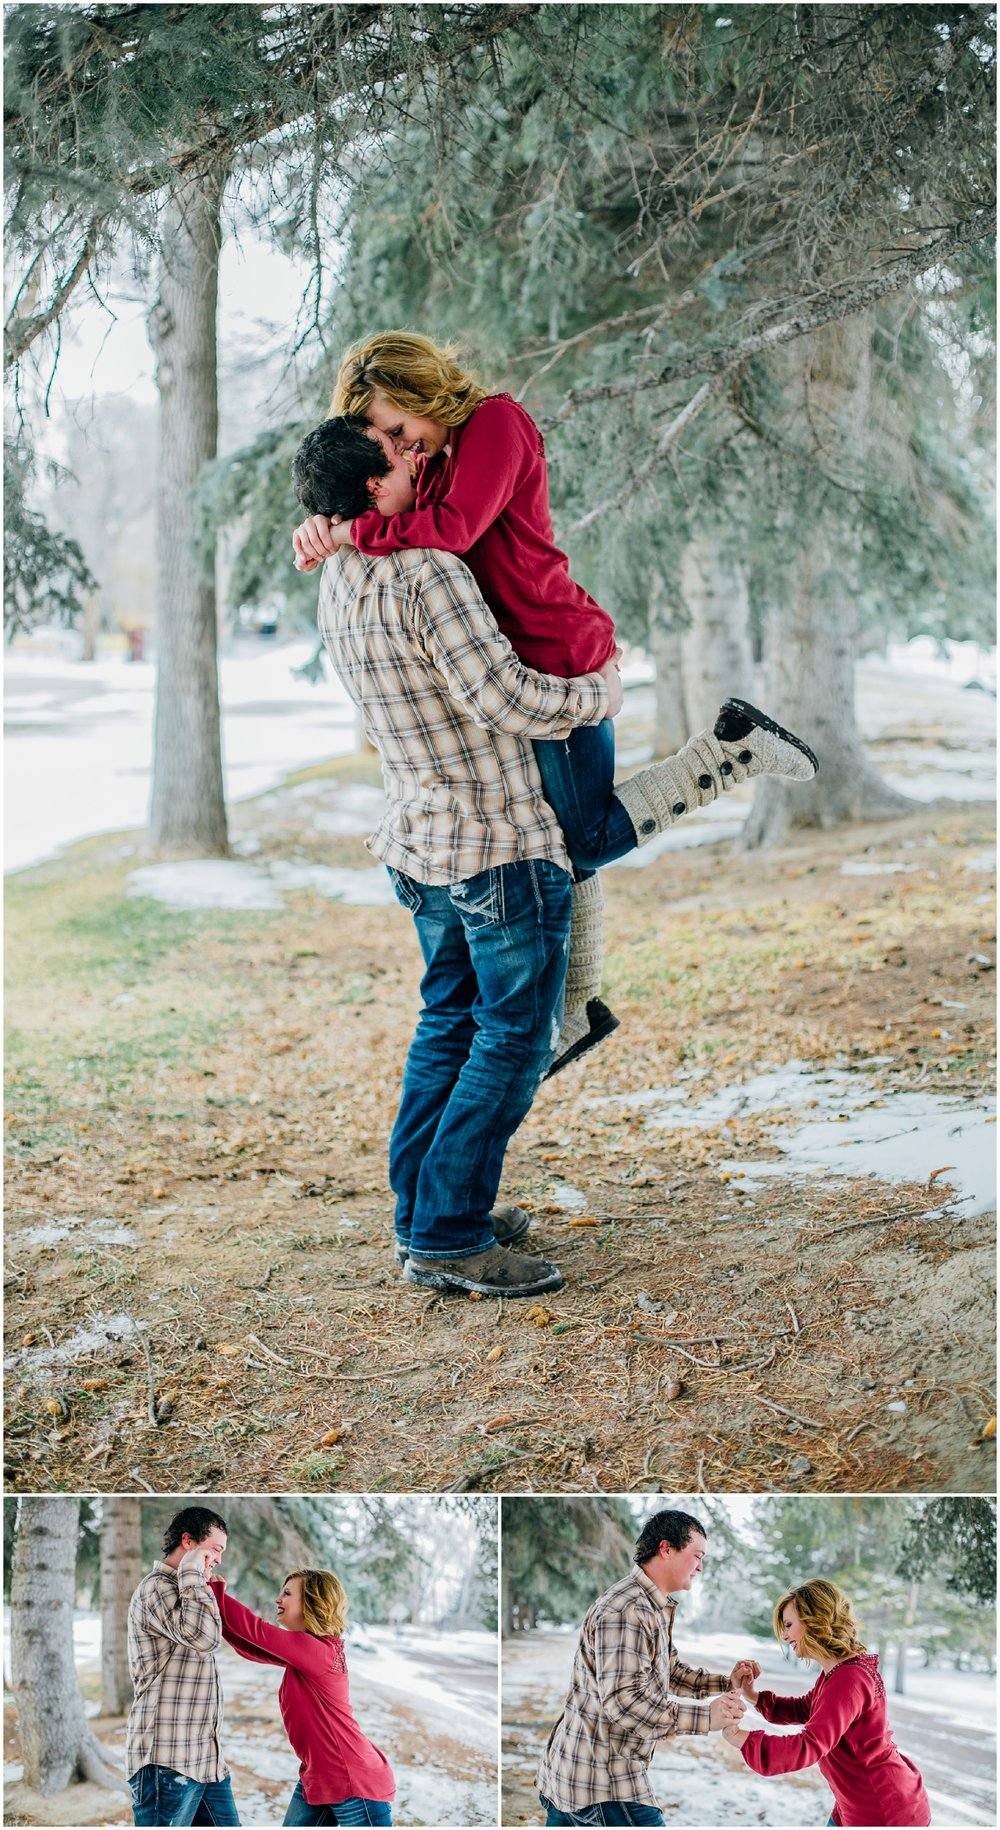 island-park-engagements-idaho-utah-wyoming-colorado-wedding-photographer_0241.jpg